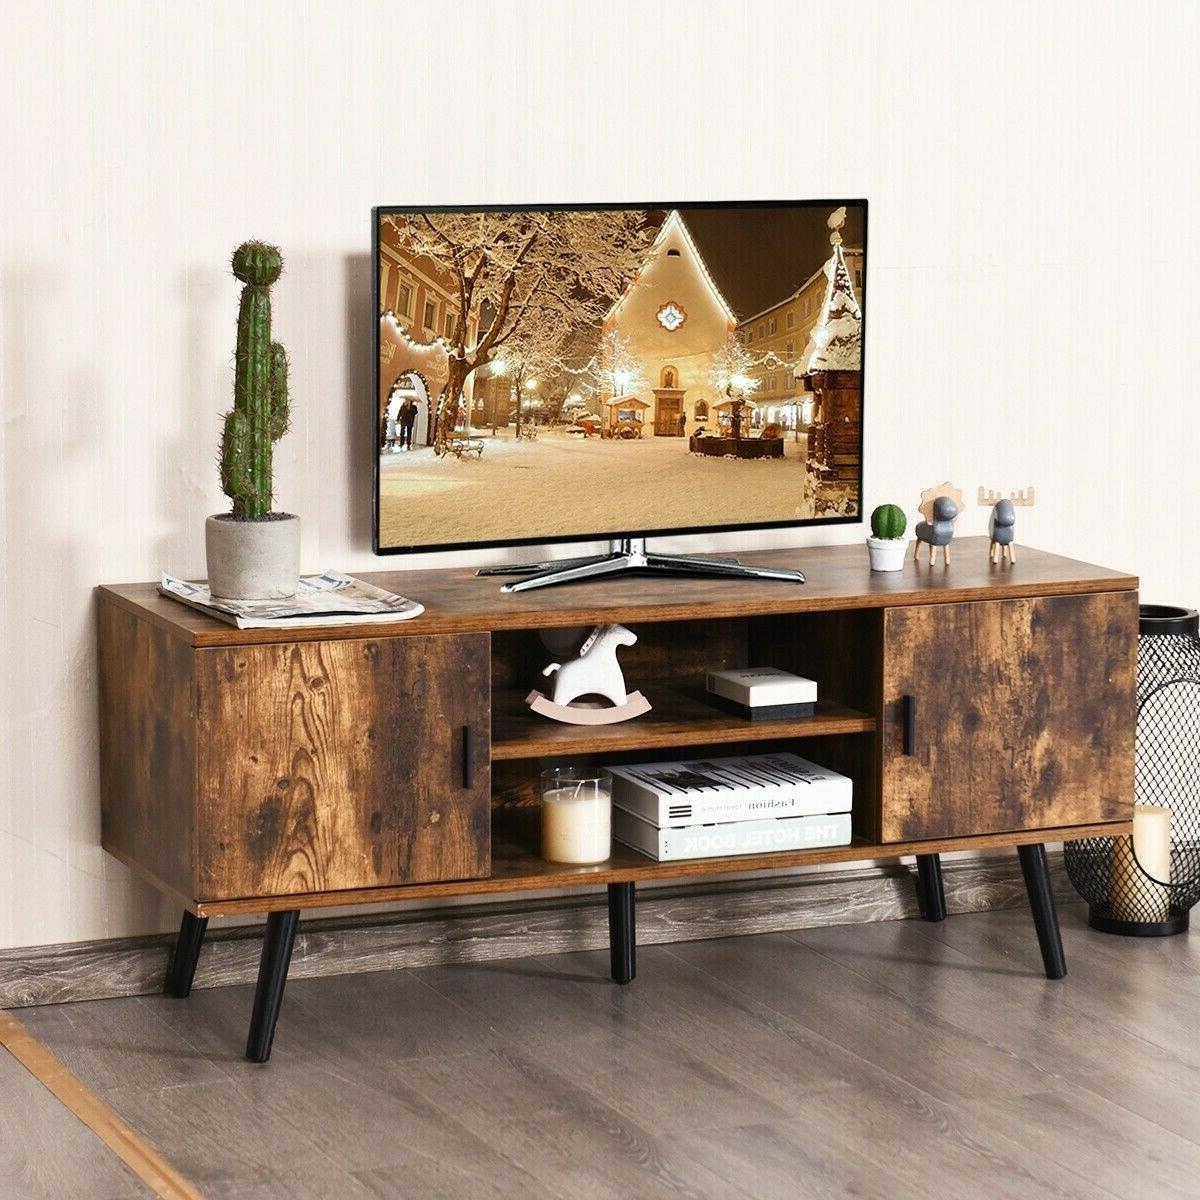 Wood TV Cabinet Living Room Table Shelves Rustic